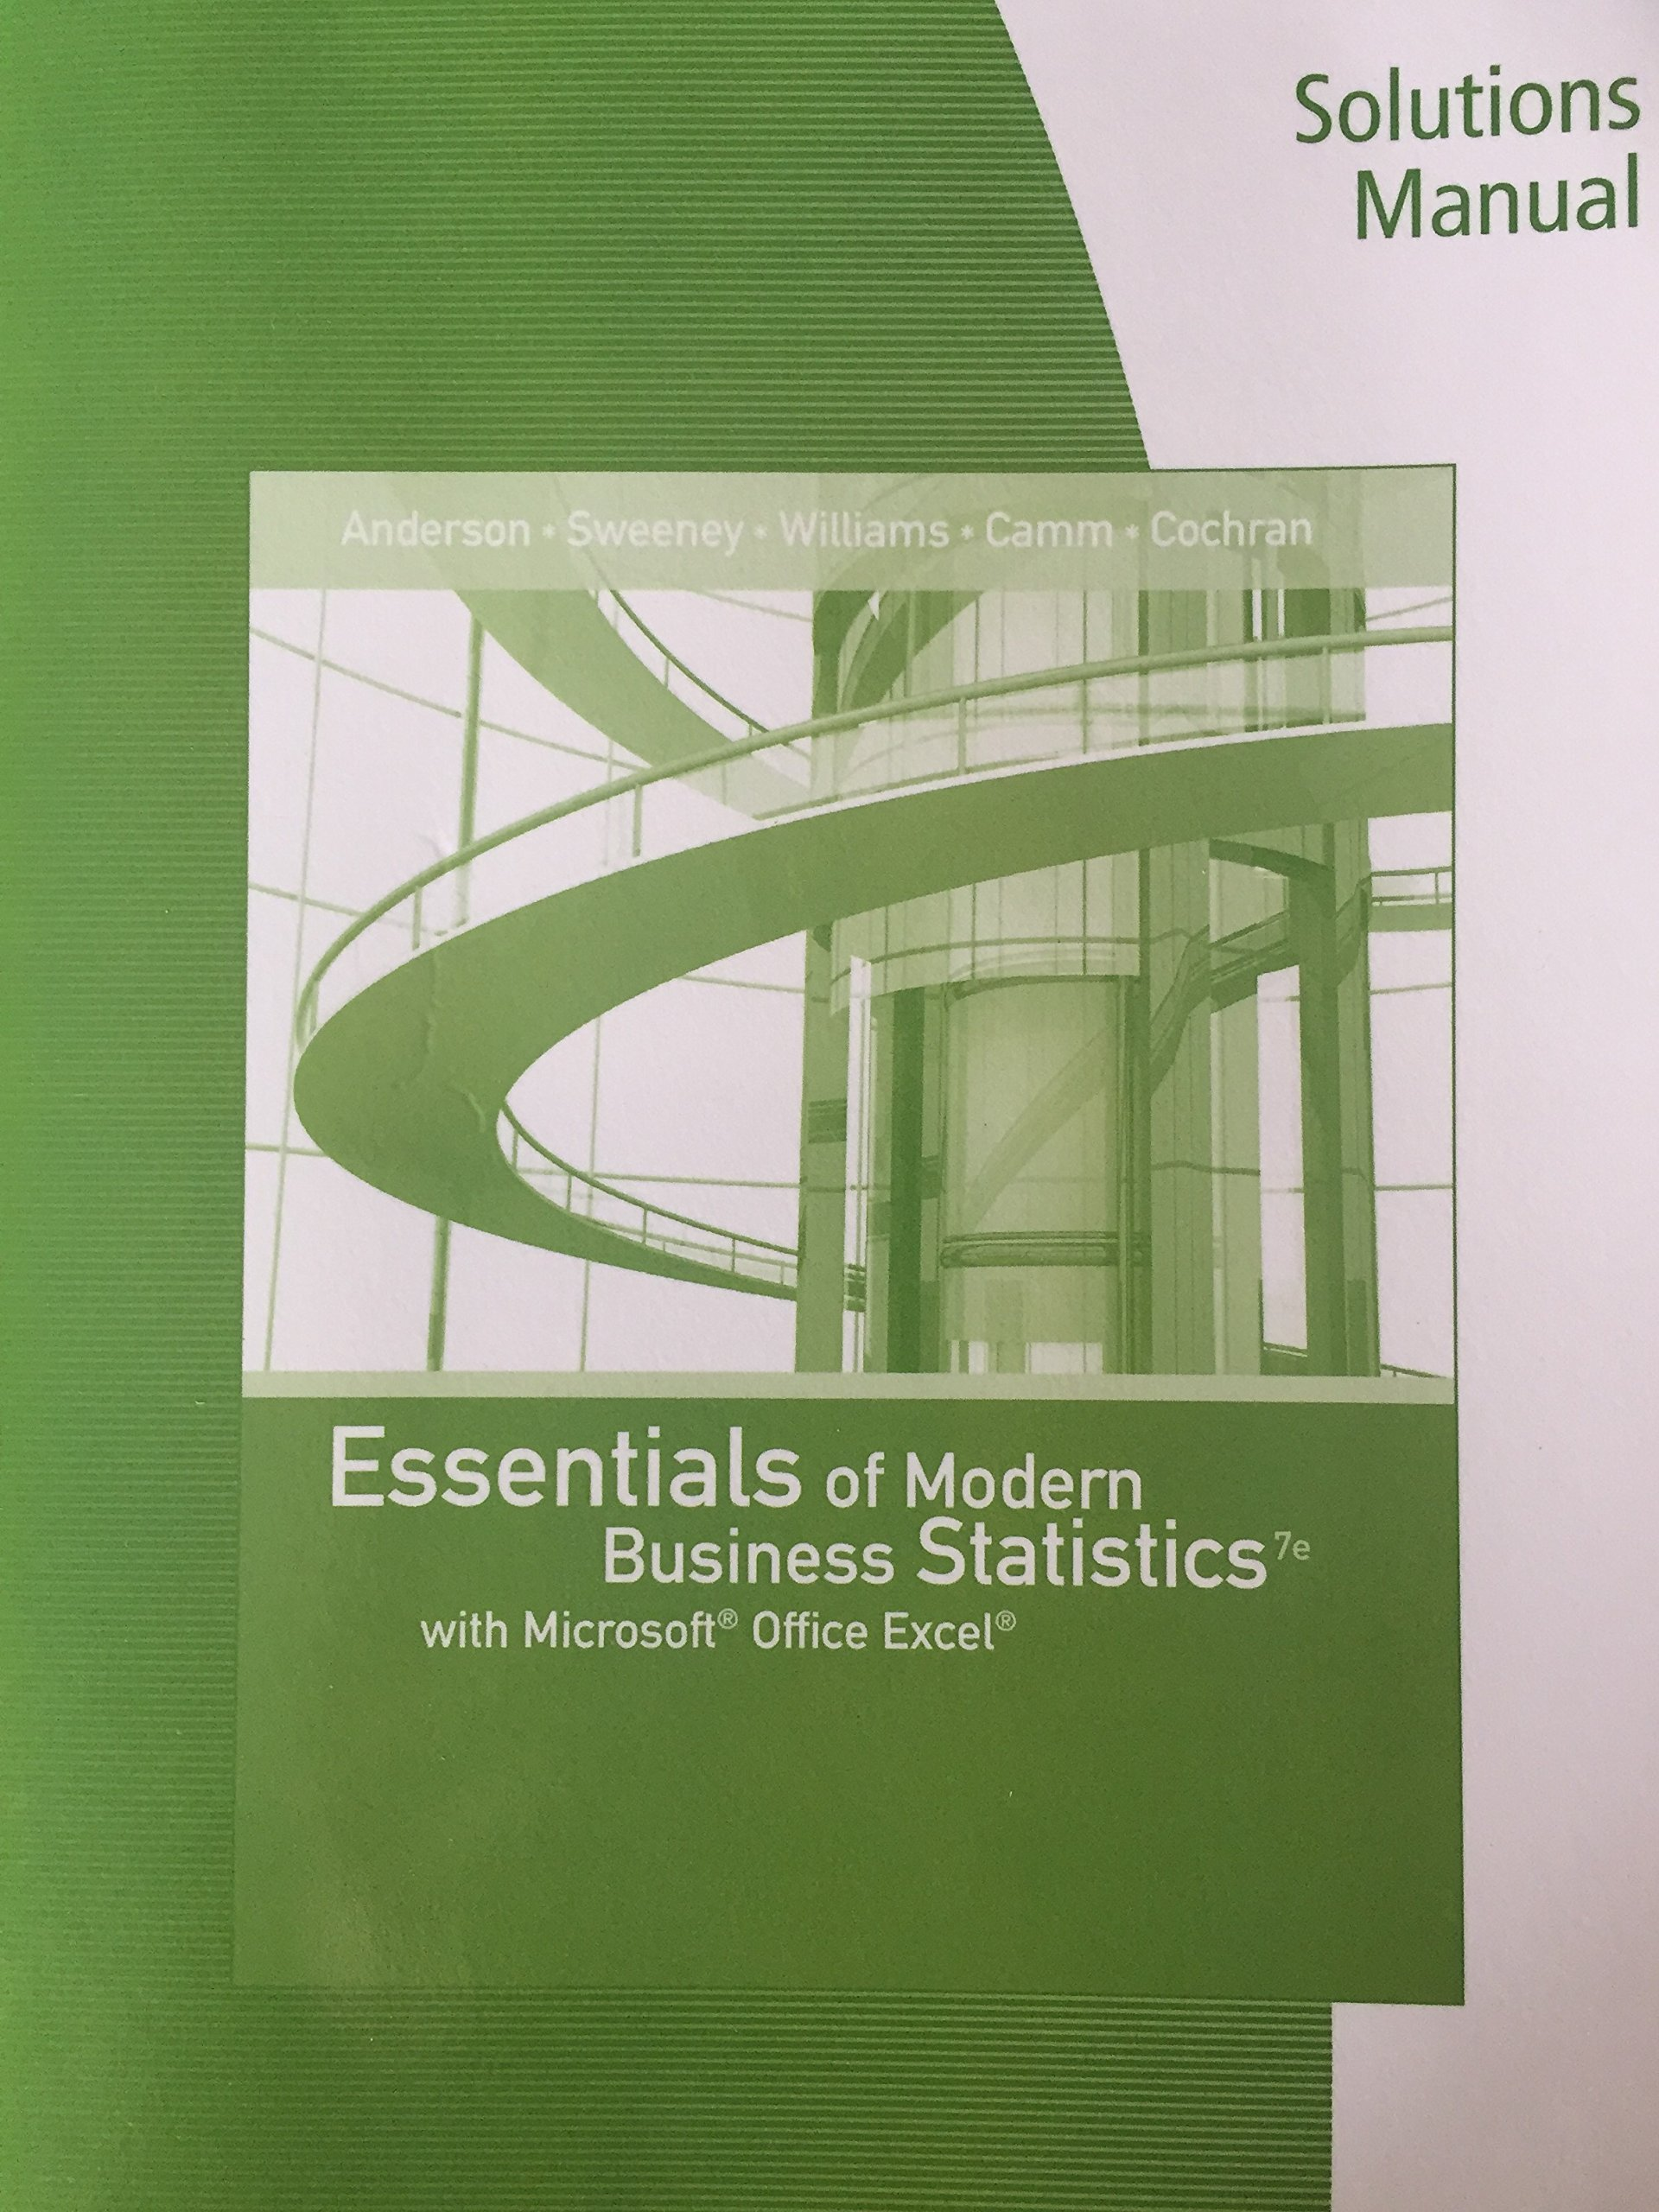 Solutions Manual - Essentials of Modern Business Statistics with Microsoft  Excel 7th edition: Anderson, Sweeney, Williams: 9781337298315: Amazon.com:  Books